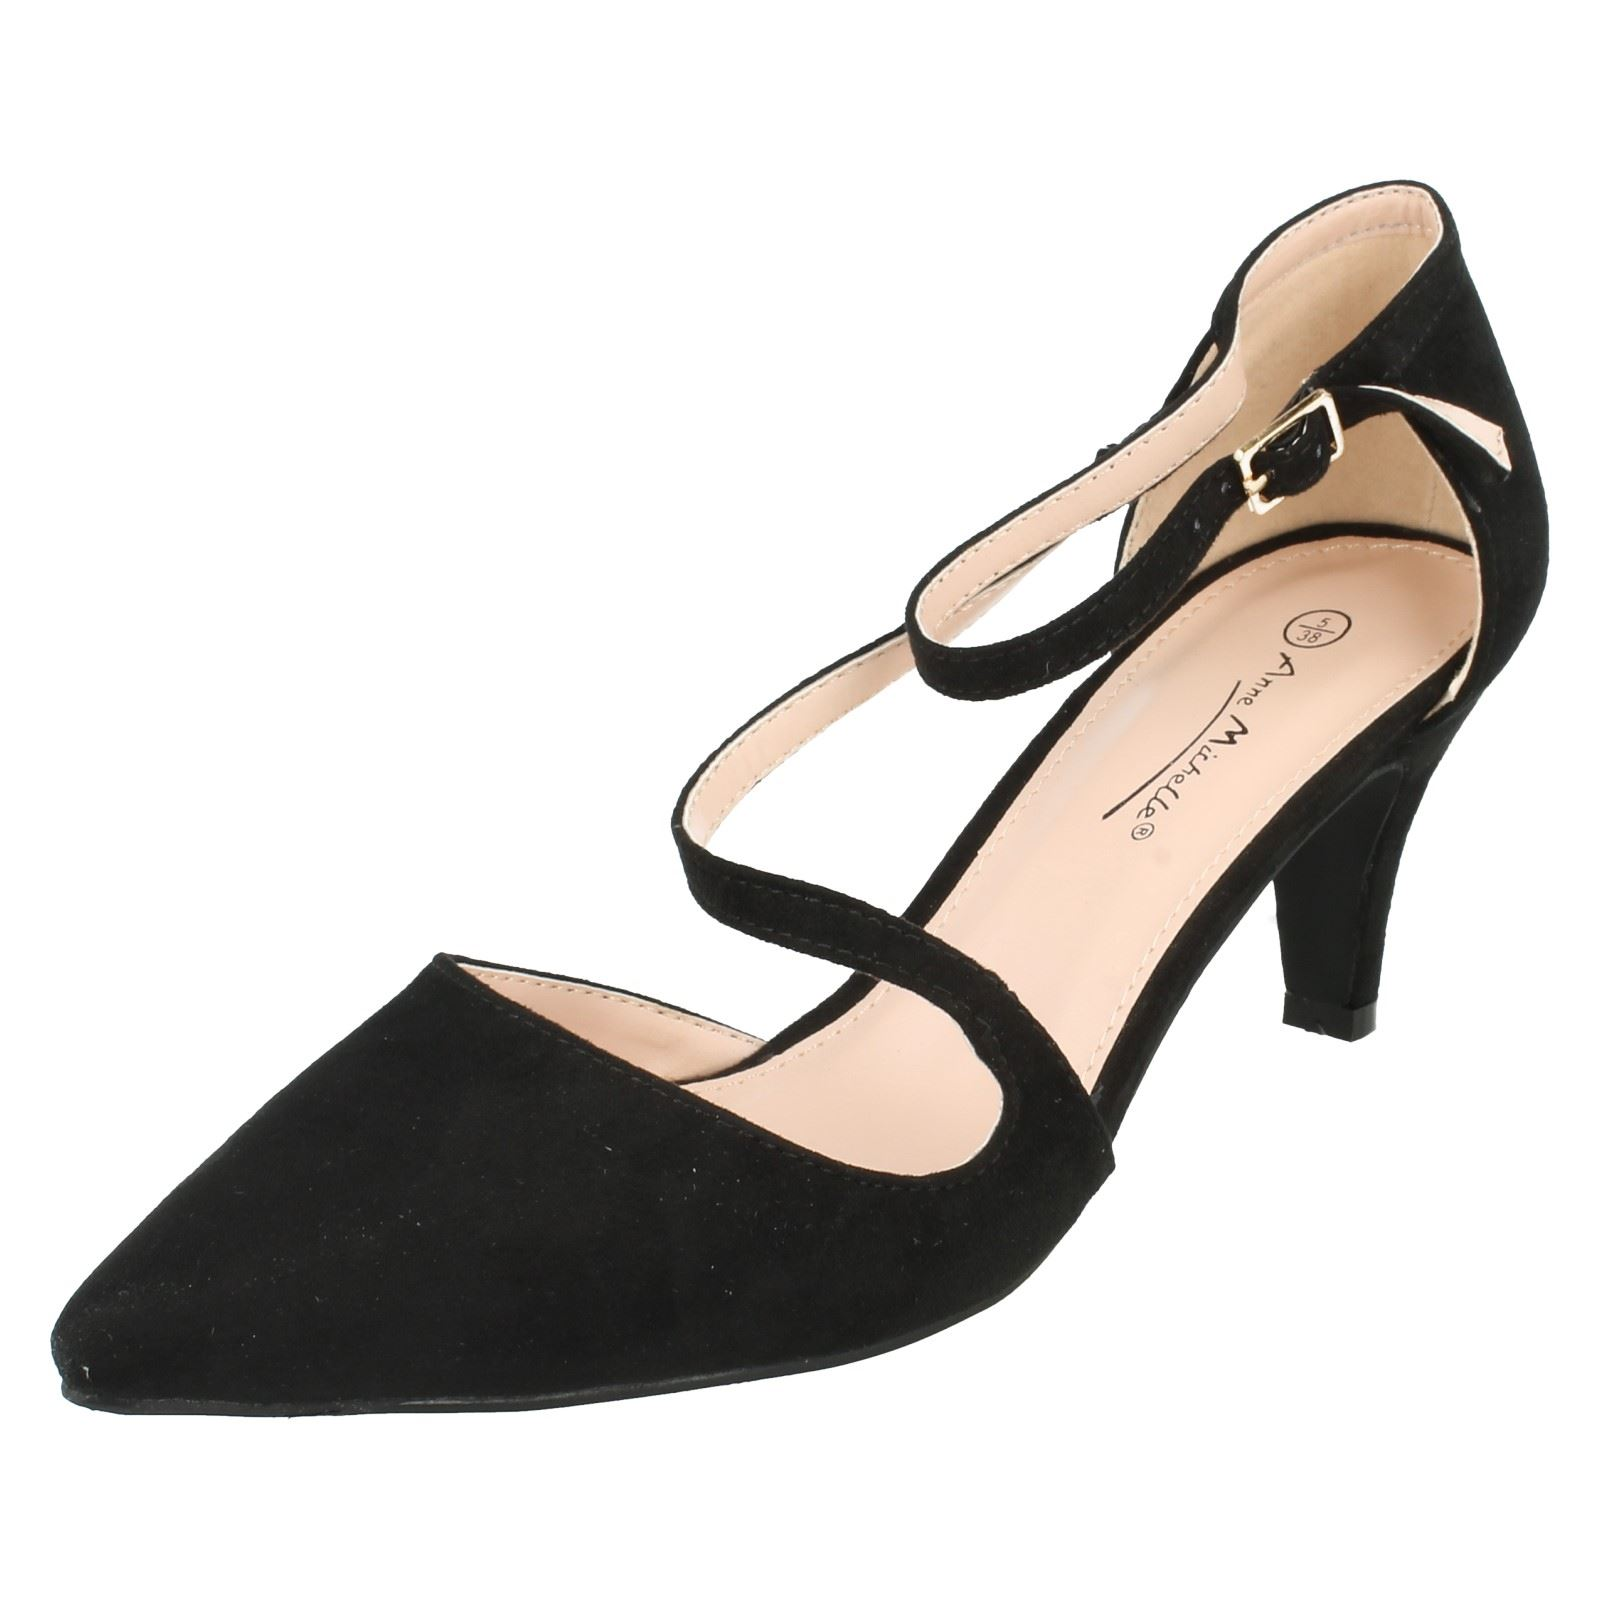 72b9810bfc6f Ladies Anne Michelle Strap Court Shoes F9960 Black Microfiber UK 7. About  this product. Picture 1 of 7  Picture 2 of 7 ...